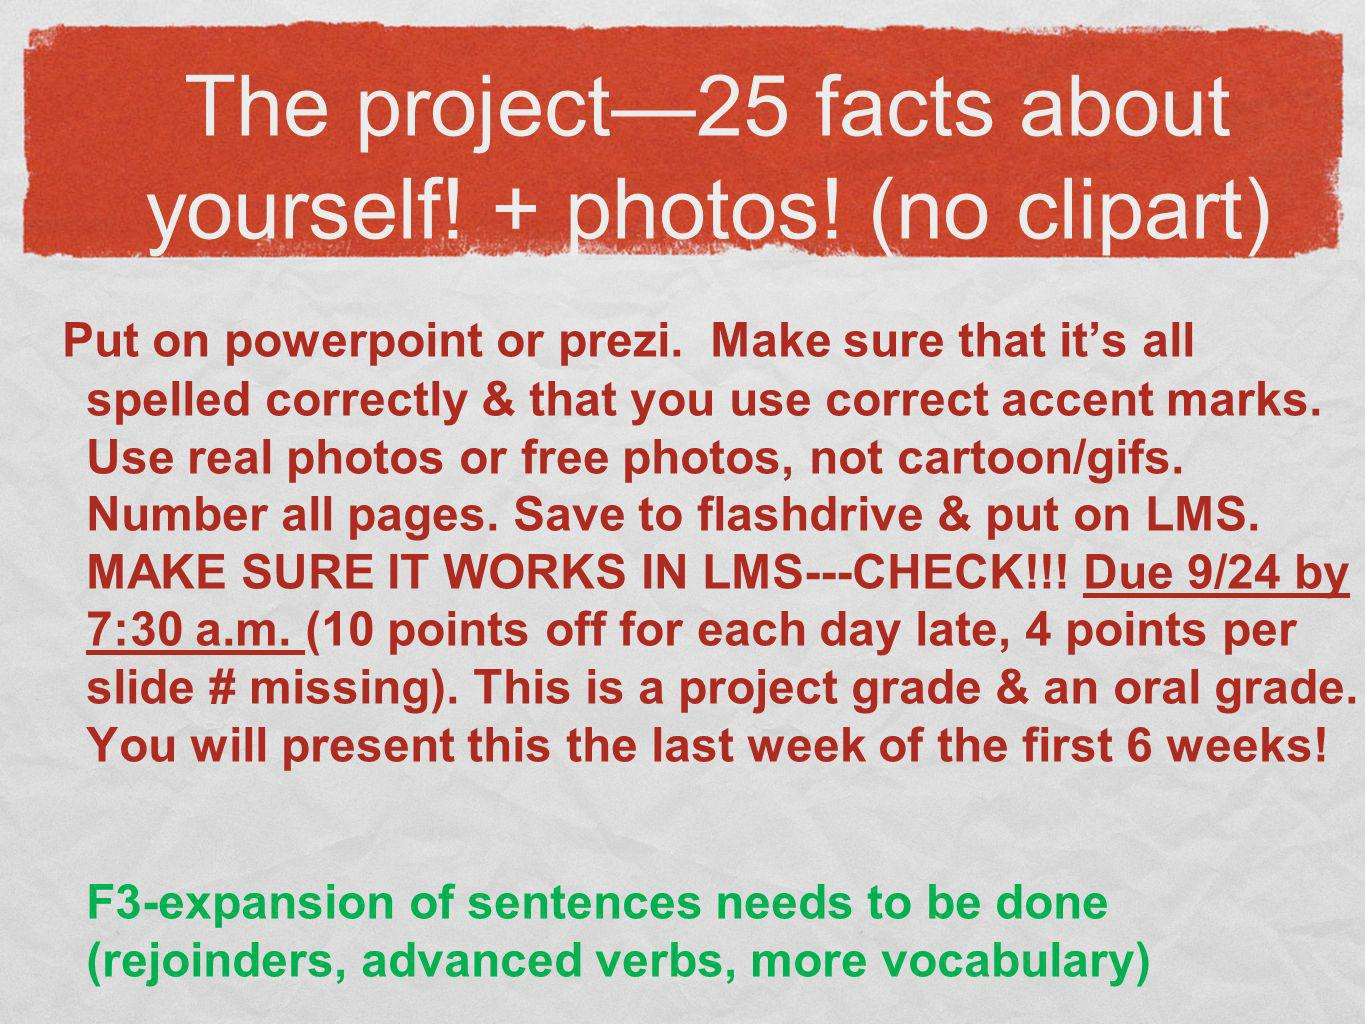 The project25 facts about yourself! + photos! (no clipart) Put on powerpoint or prezi. Make sure that its all spelled correctly & that you use correct